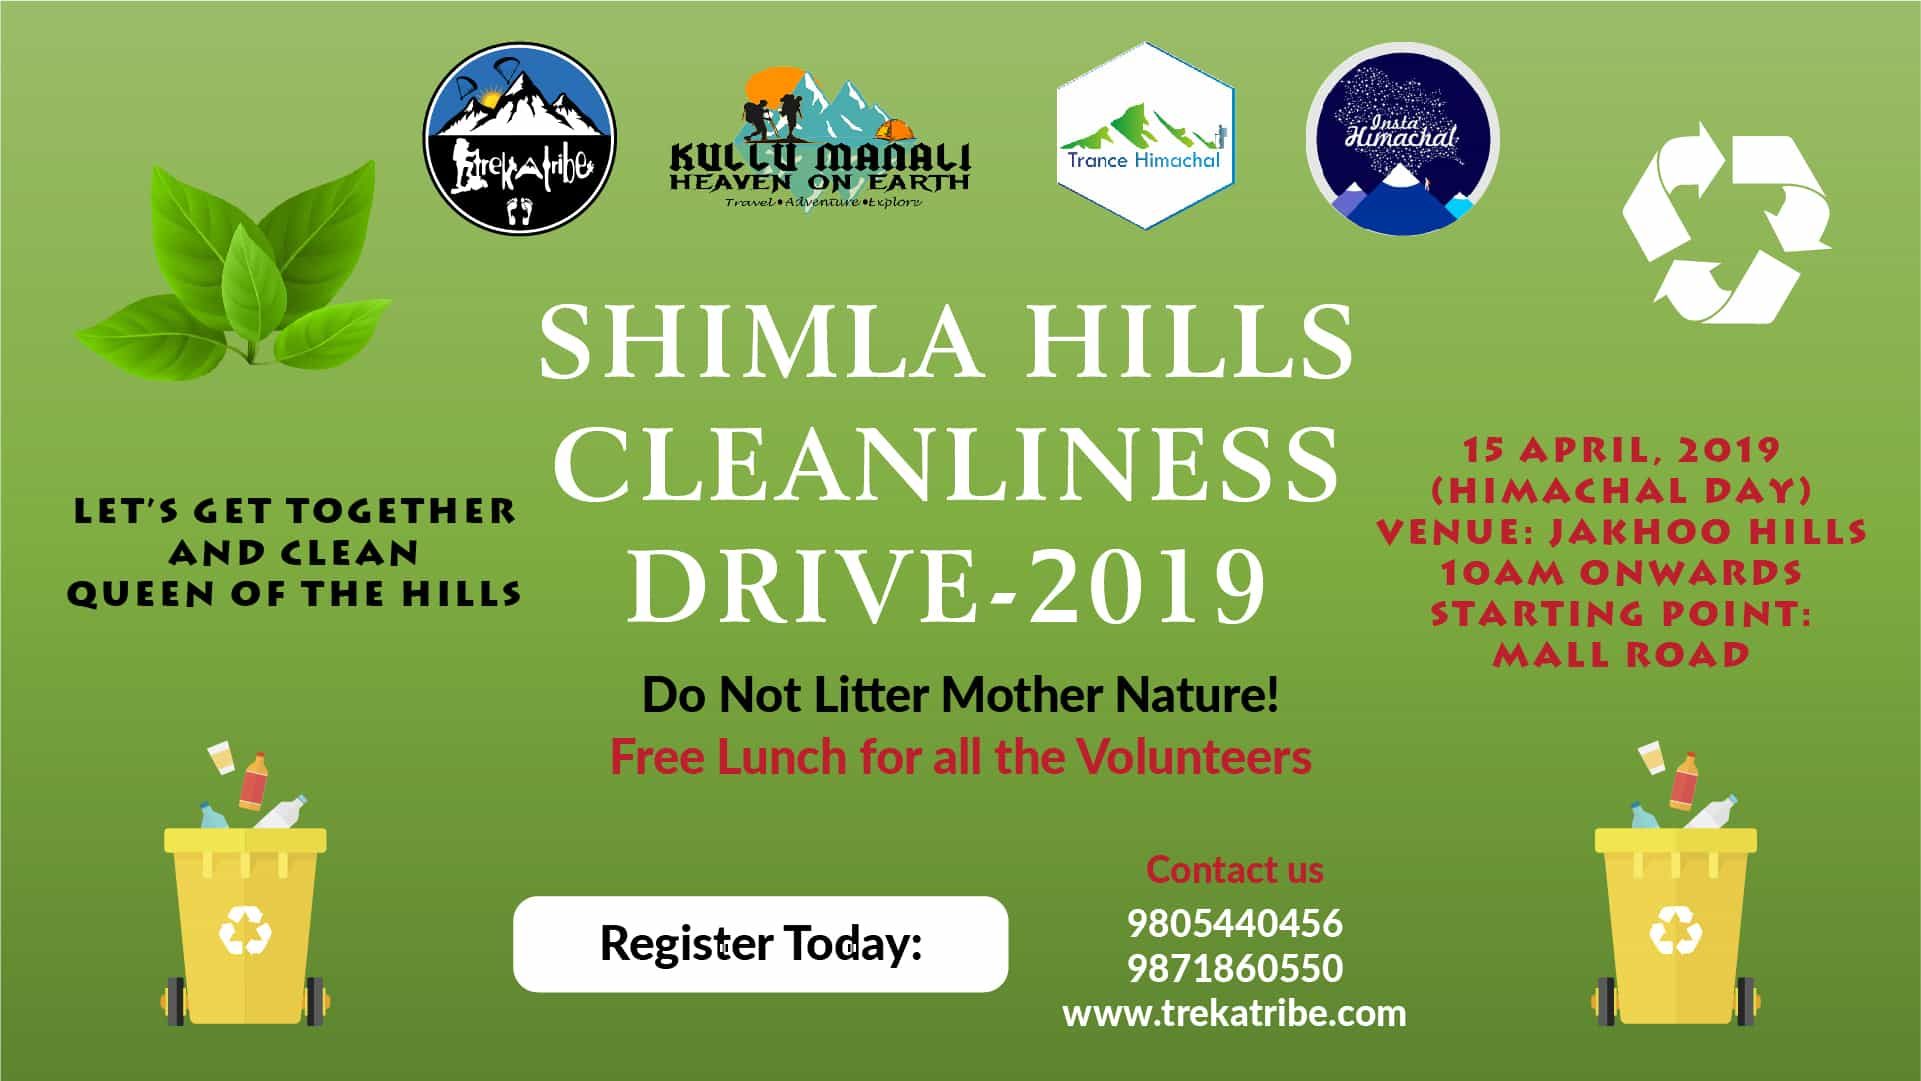 Cleanliness Drive 2019- on himachal day - Shimla